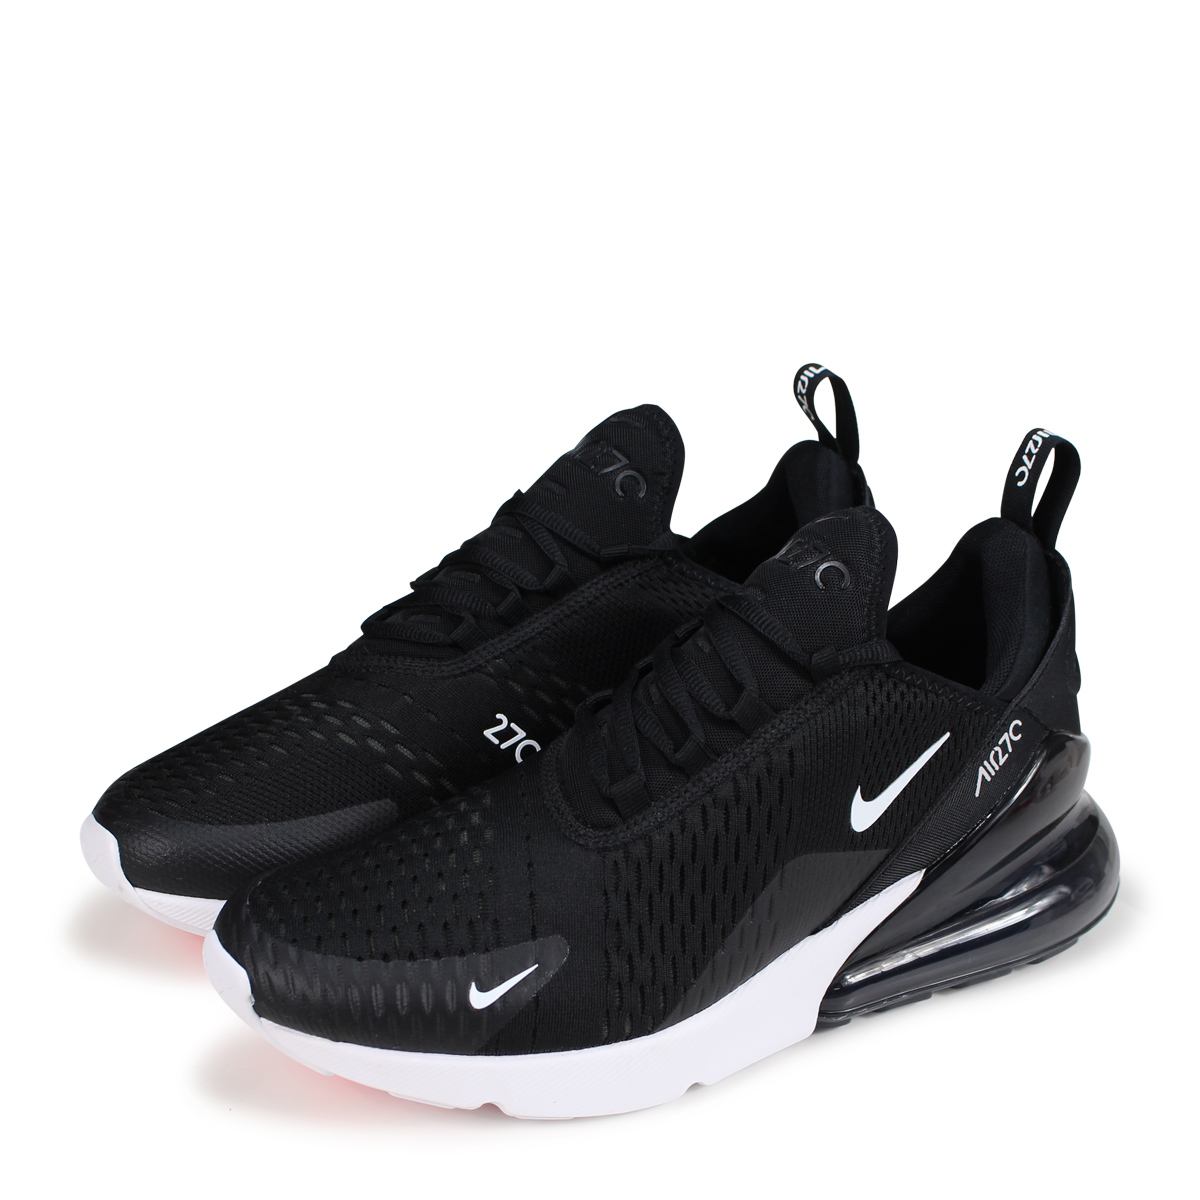 best website f7ff9 ae8af Nike NIKE Air Max 270 sneakers men AIR MAX 270 AH8050-002 black [the 8/16  additional arrival] [198]